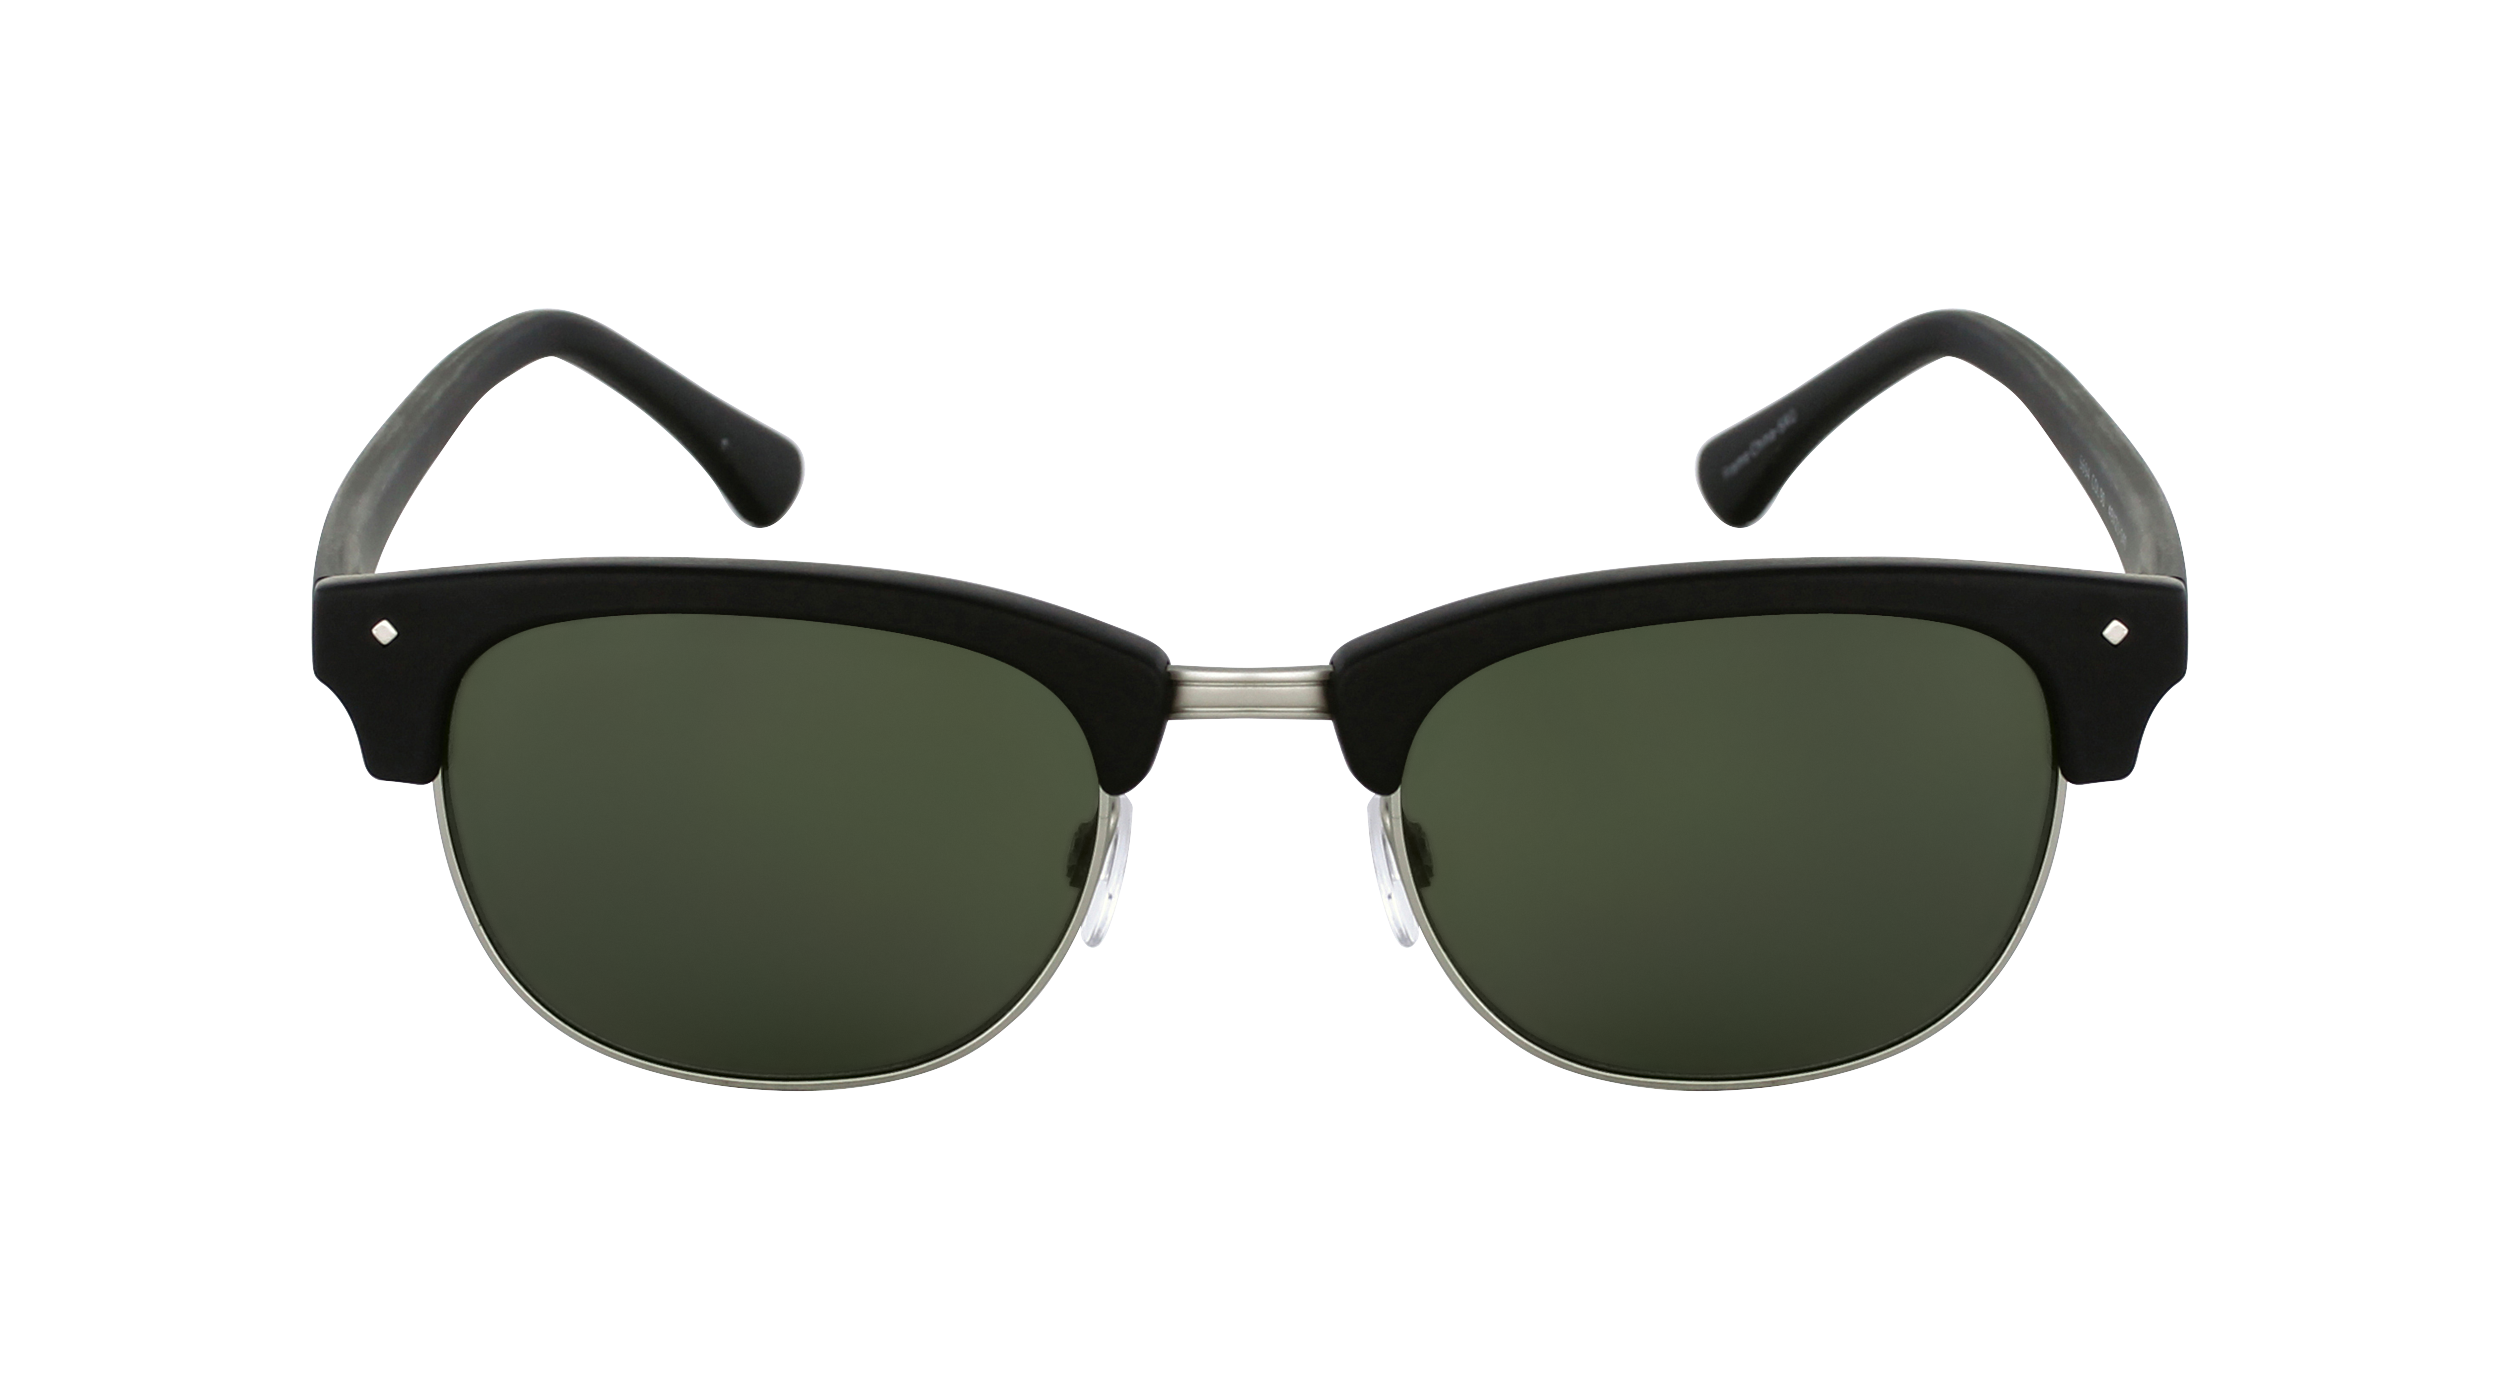 max cole s 694 sunglasses jcpenney optical